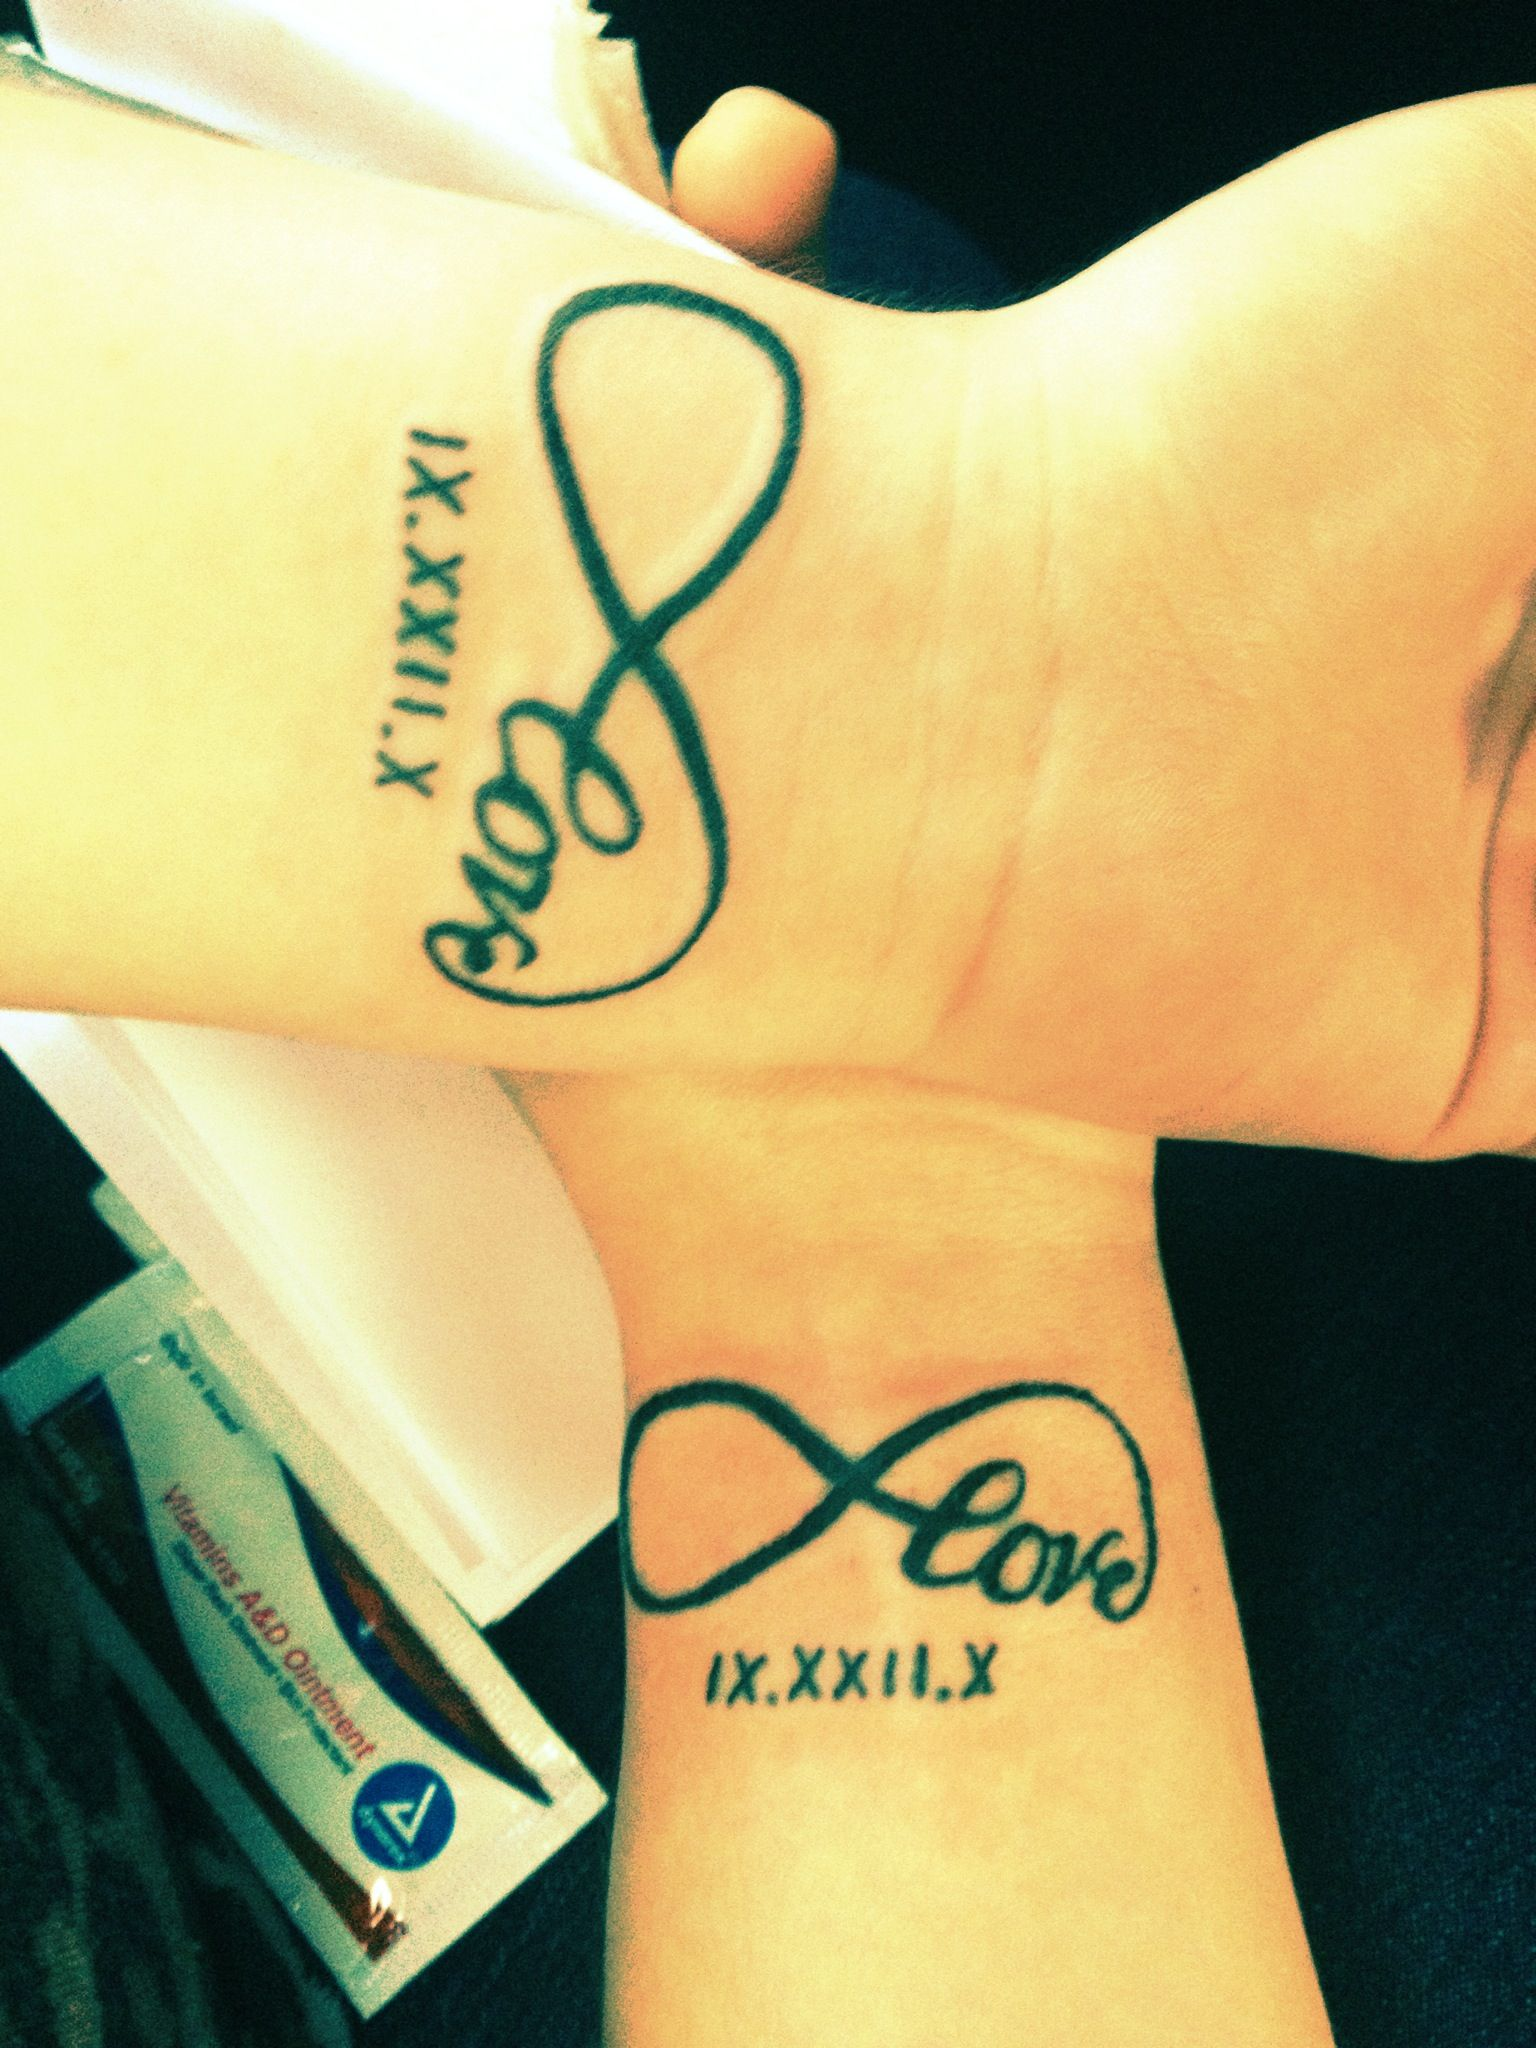 41dee9b8c8383 Couple tattoo, love infinity with the date in Roman numerals on wrist.